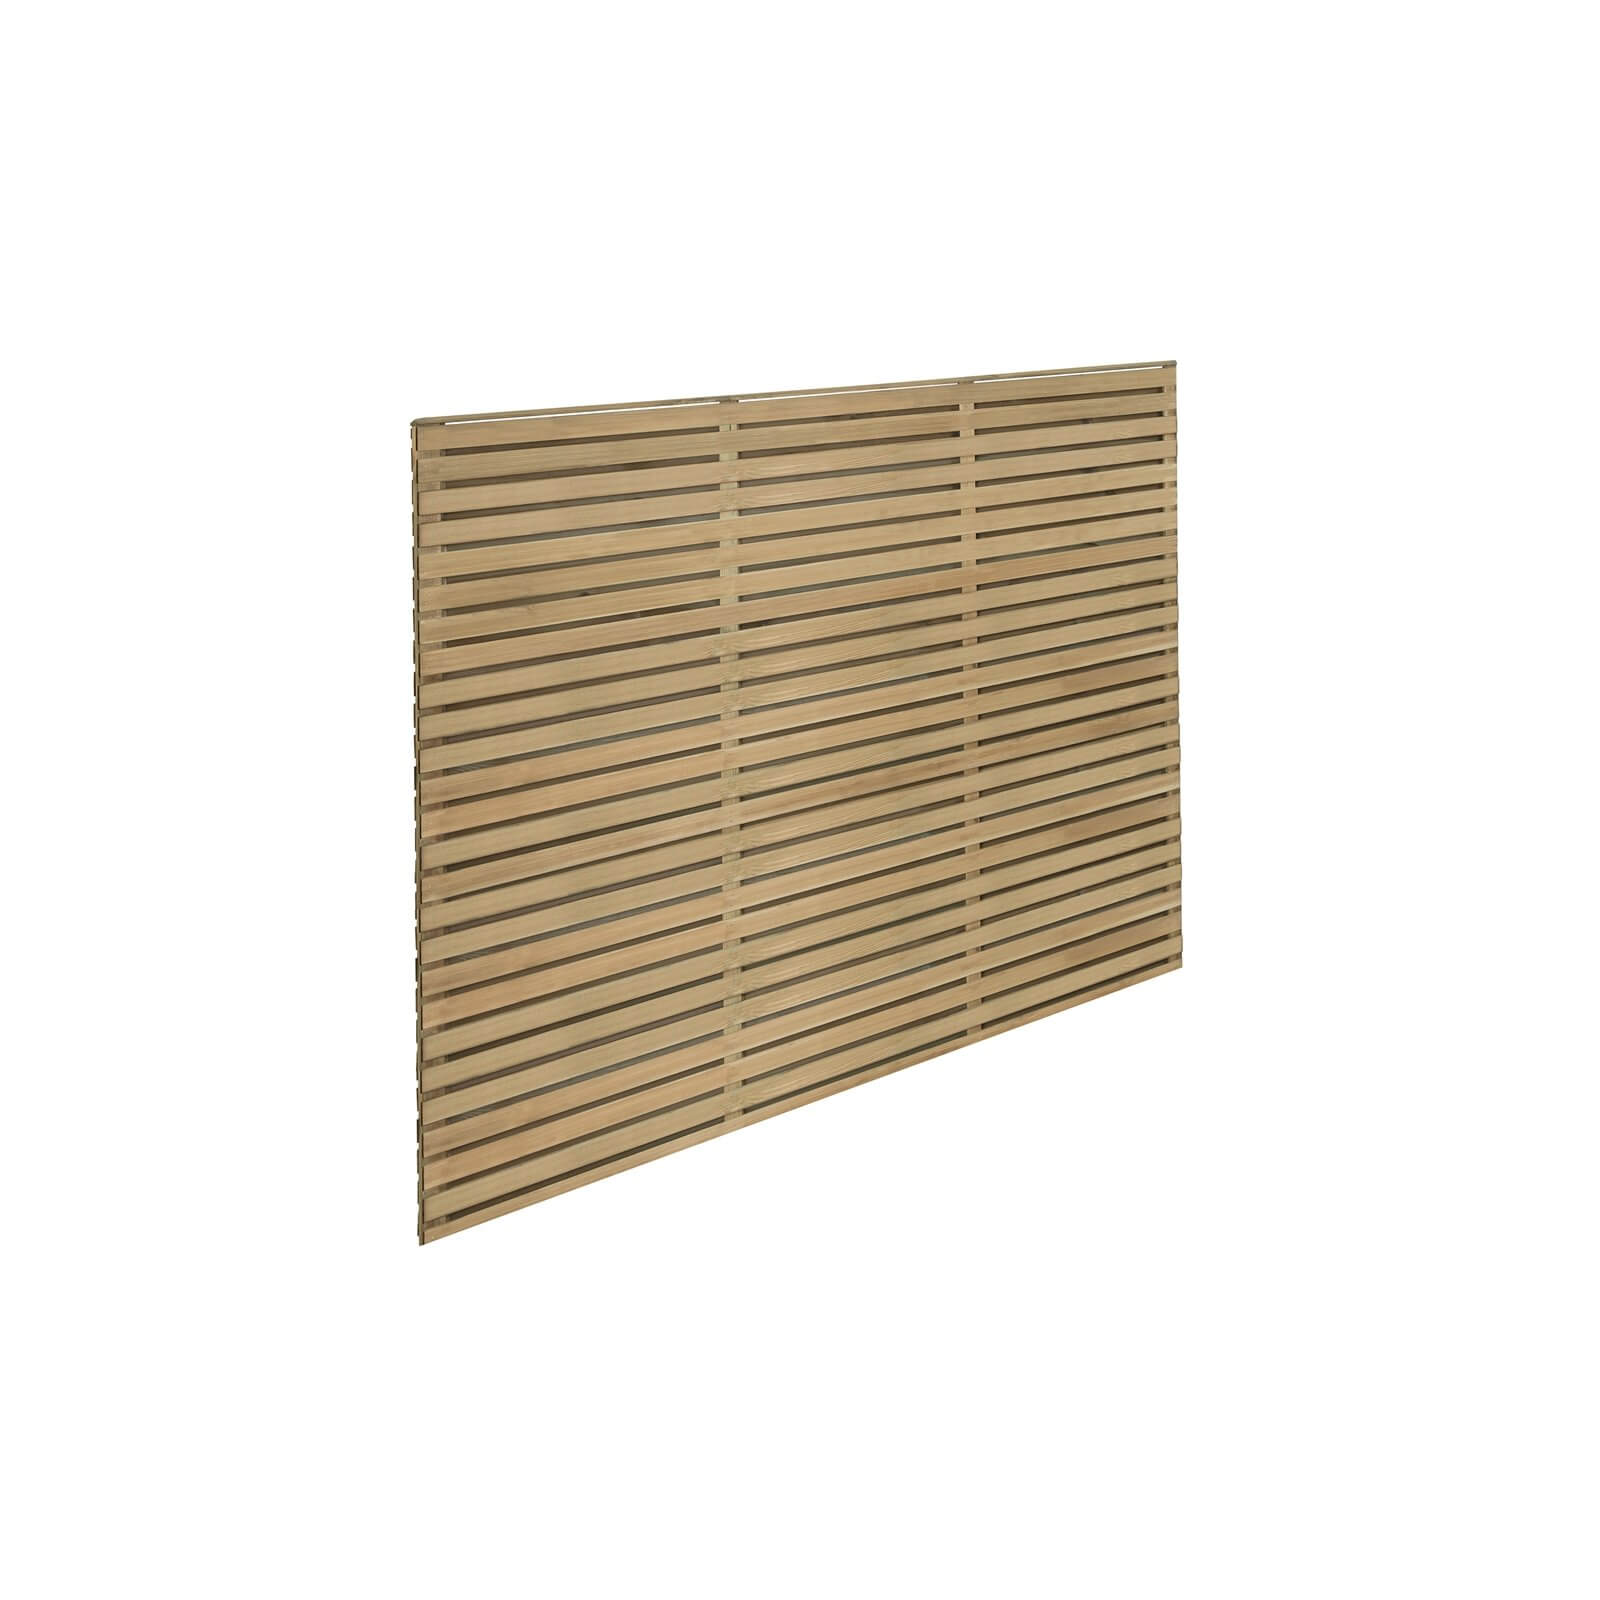 6ft x 5ft (1.8m x 1.5m) Pressure Treated Contemporary Double Slatted Fence Panel - Pack of 5